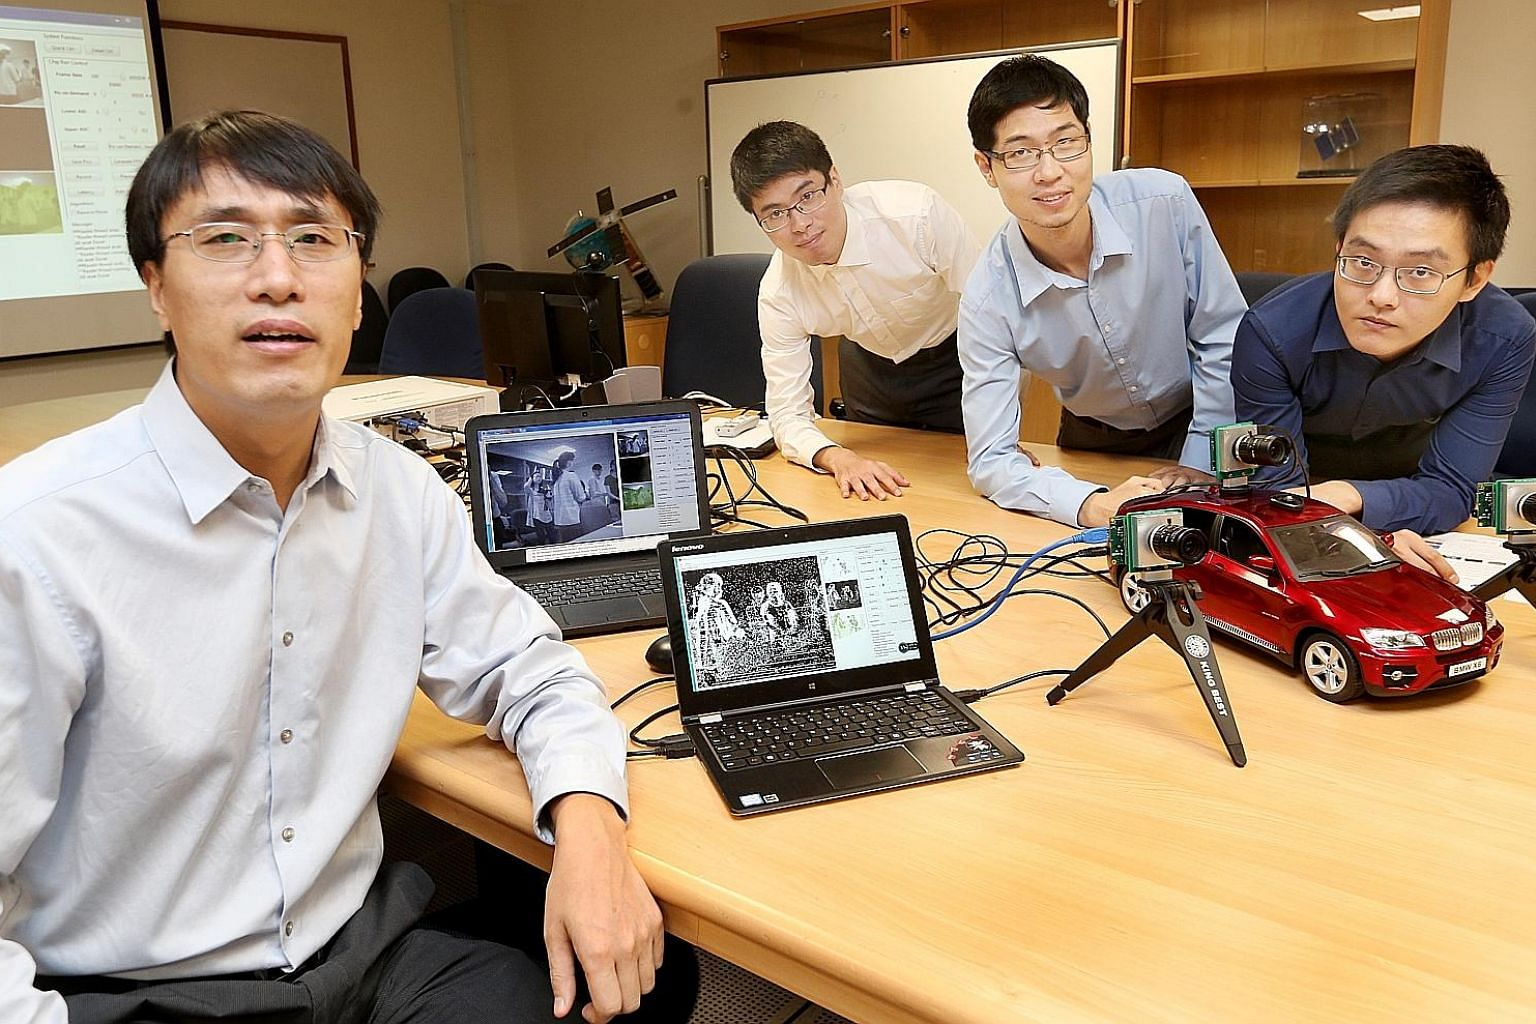 From left: Assistant Professor Chen Shoushun, 40, with researchers Guo Menghan, 28, Li Wan Long, 26, and Yang Wen Lei, 25, and the prototype camera named Celex. The ultra-fast camera mimics the capability of the human eye and can track minute changes